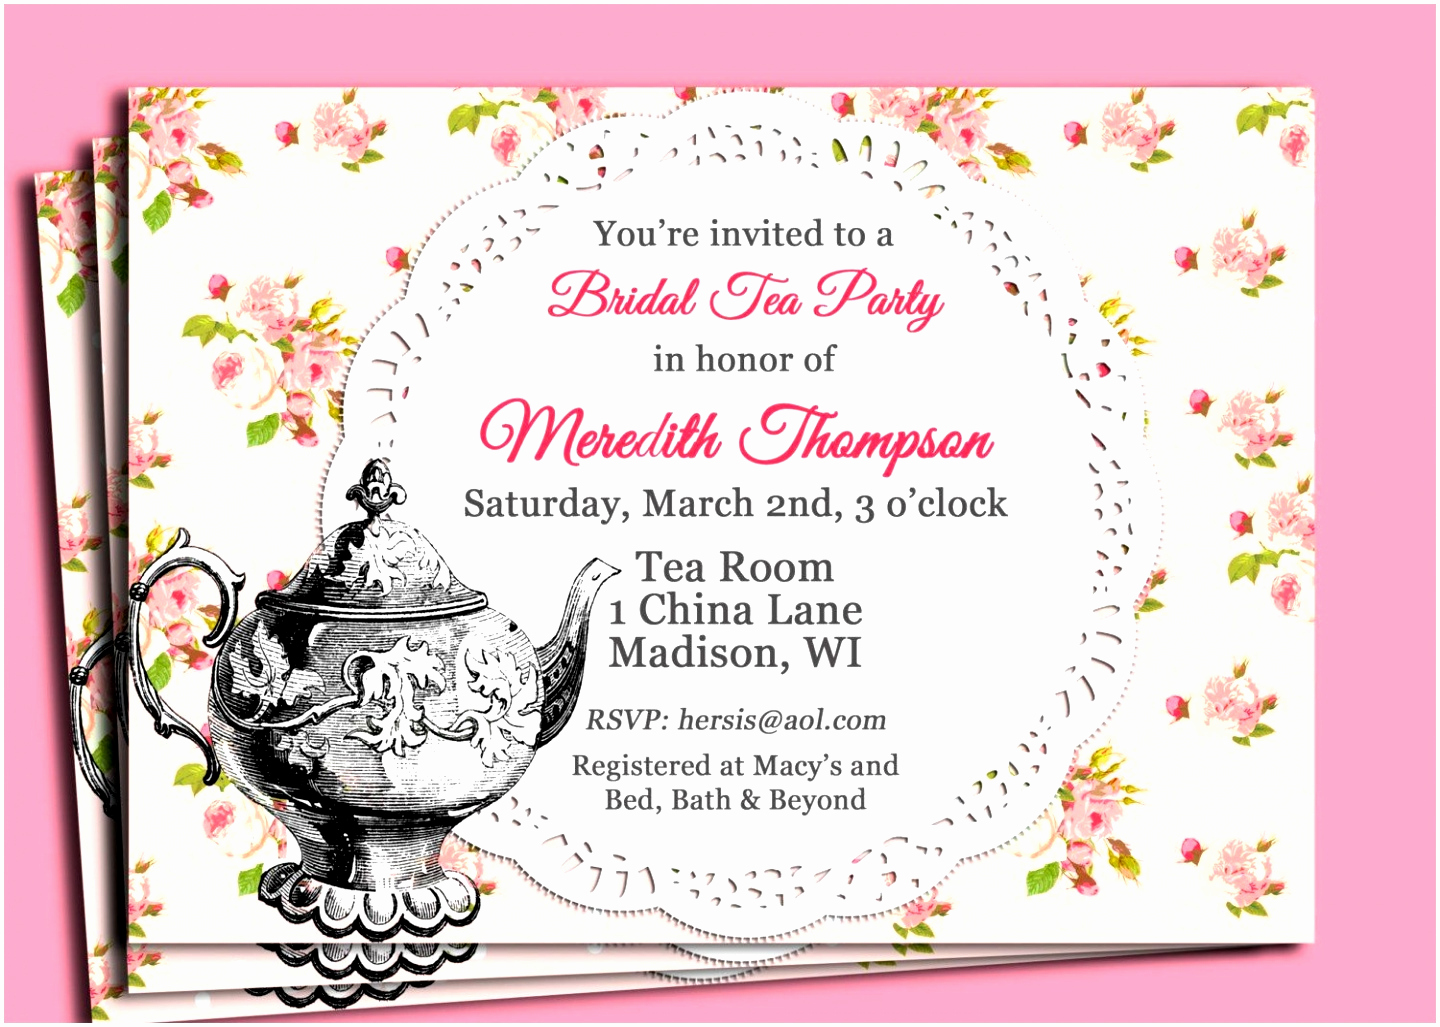 Tea Party Invitation Template Word Elegant 6 Tea Party Invitations Templates Free Wiawp